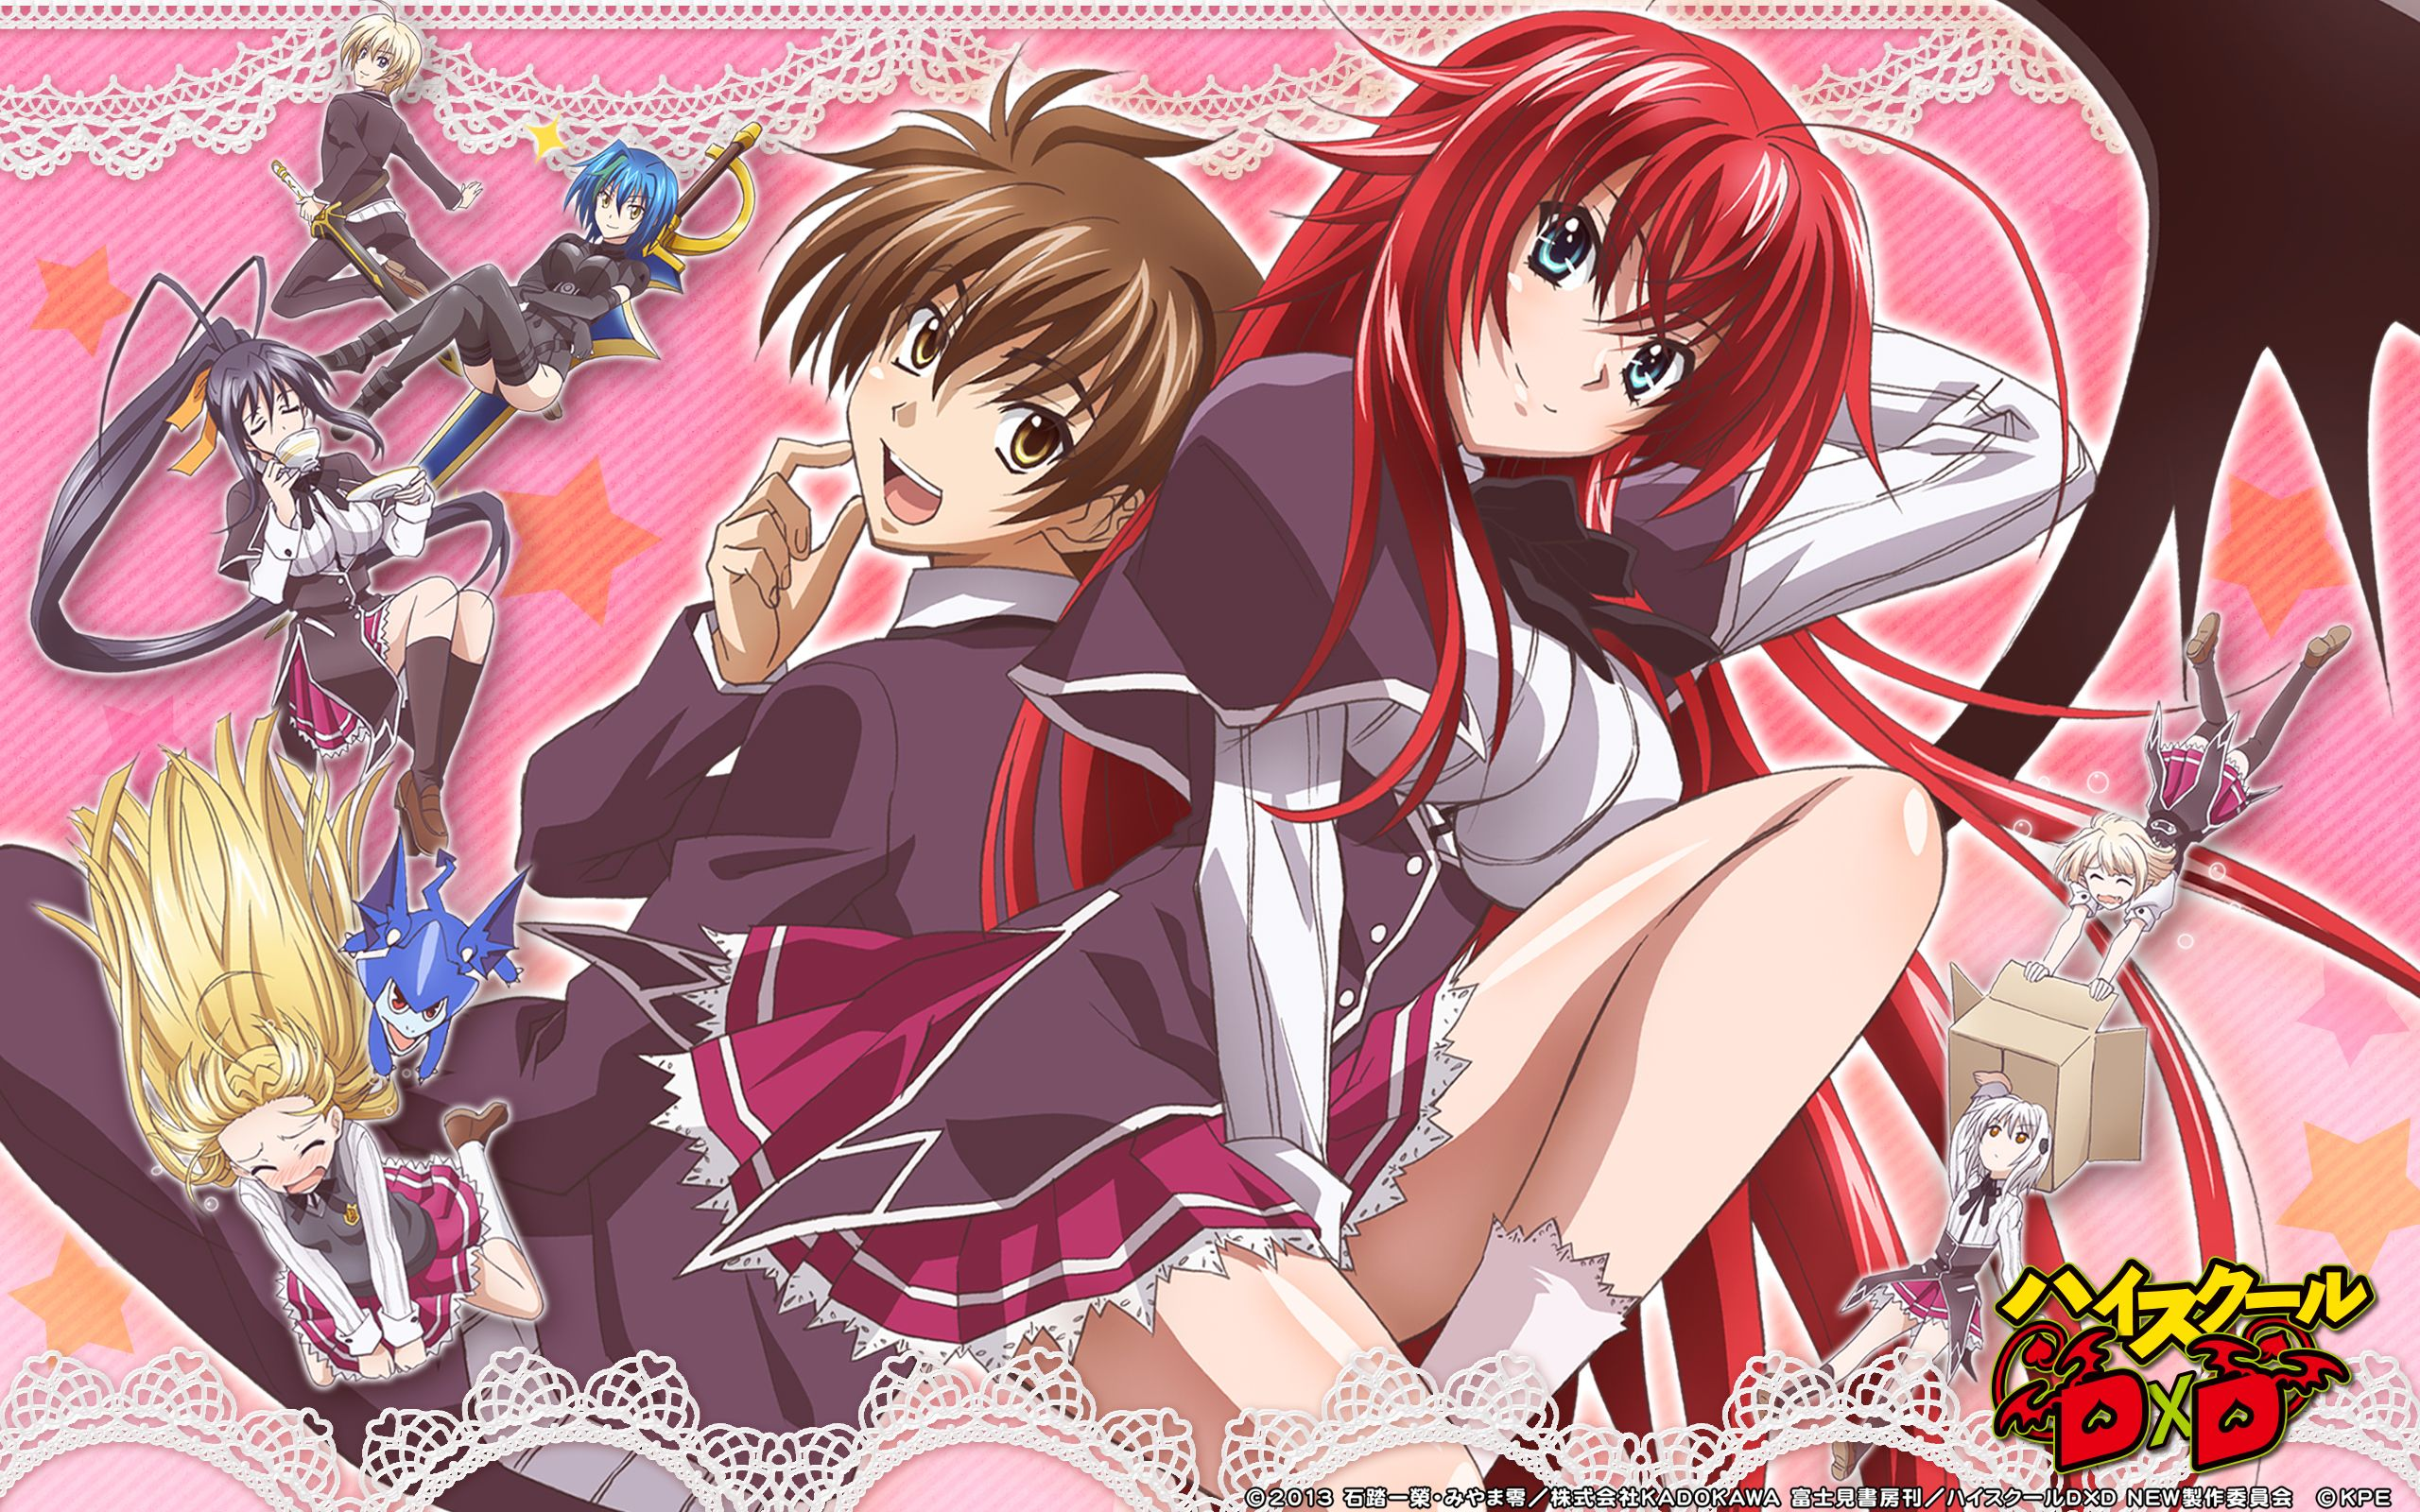 Highschool Dxd Wallpaper Hd No17 By Highschooldxdcards Jacks